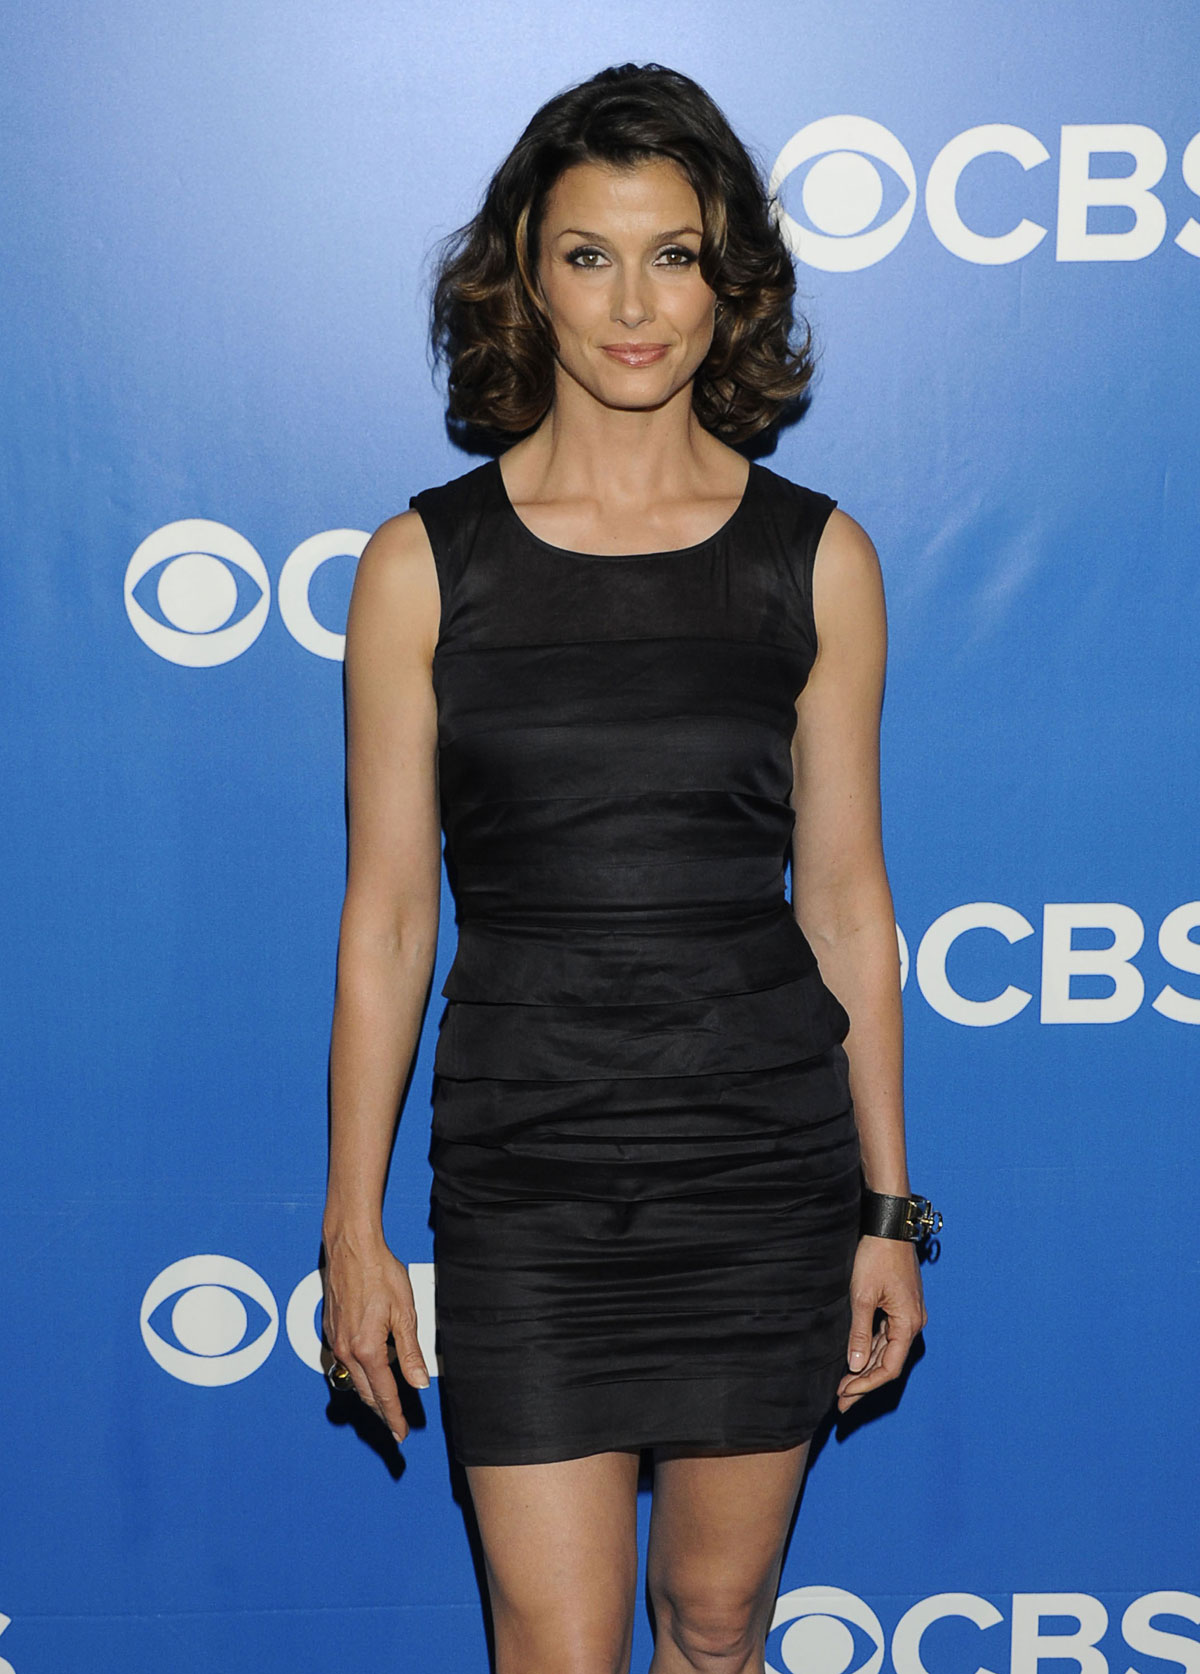 BRIDGET MOYNAHAN at CBS Upfront